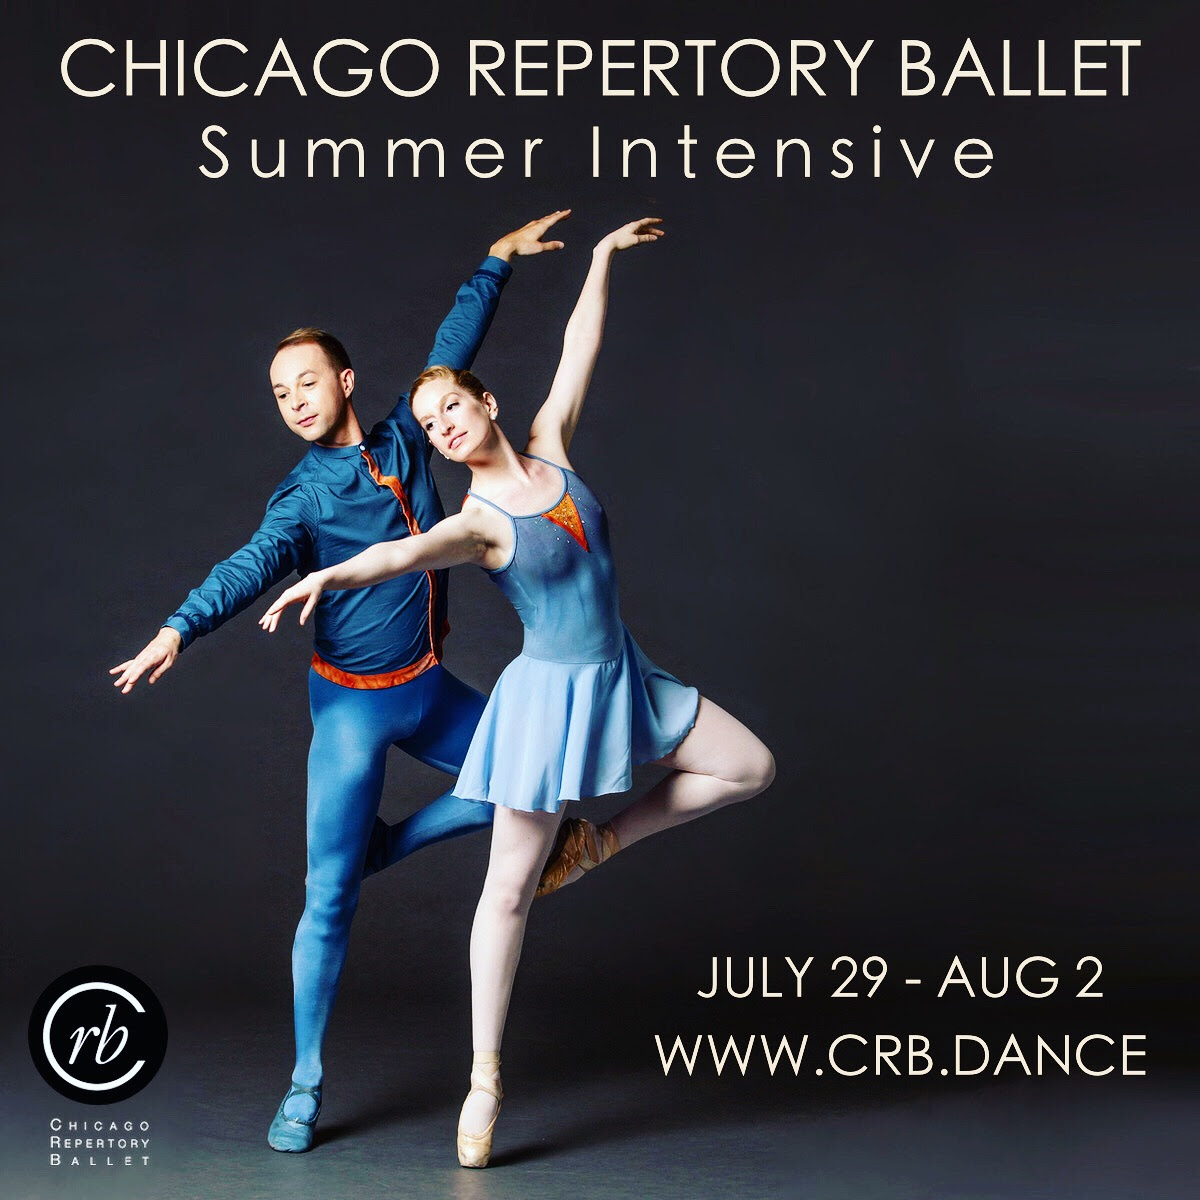 CRB's Summer Intensive is July 29th- August 2nd. There are still places avaliable for dancers between the ages of 13-19. - [More Information]